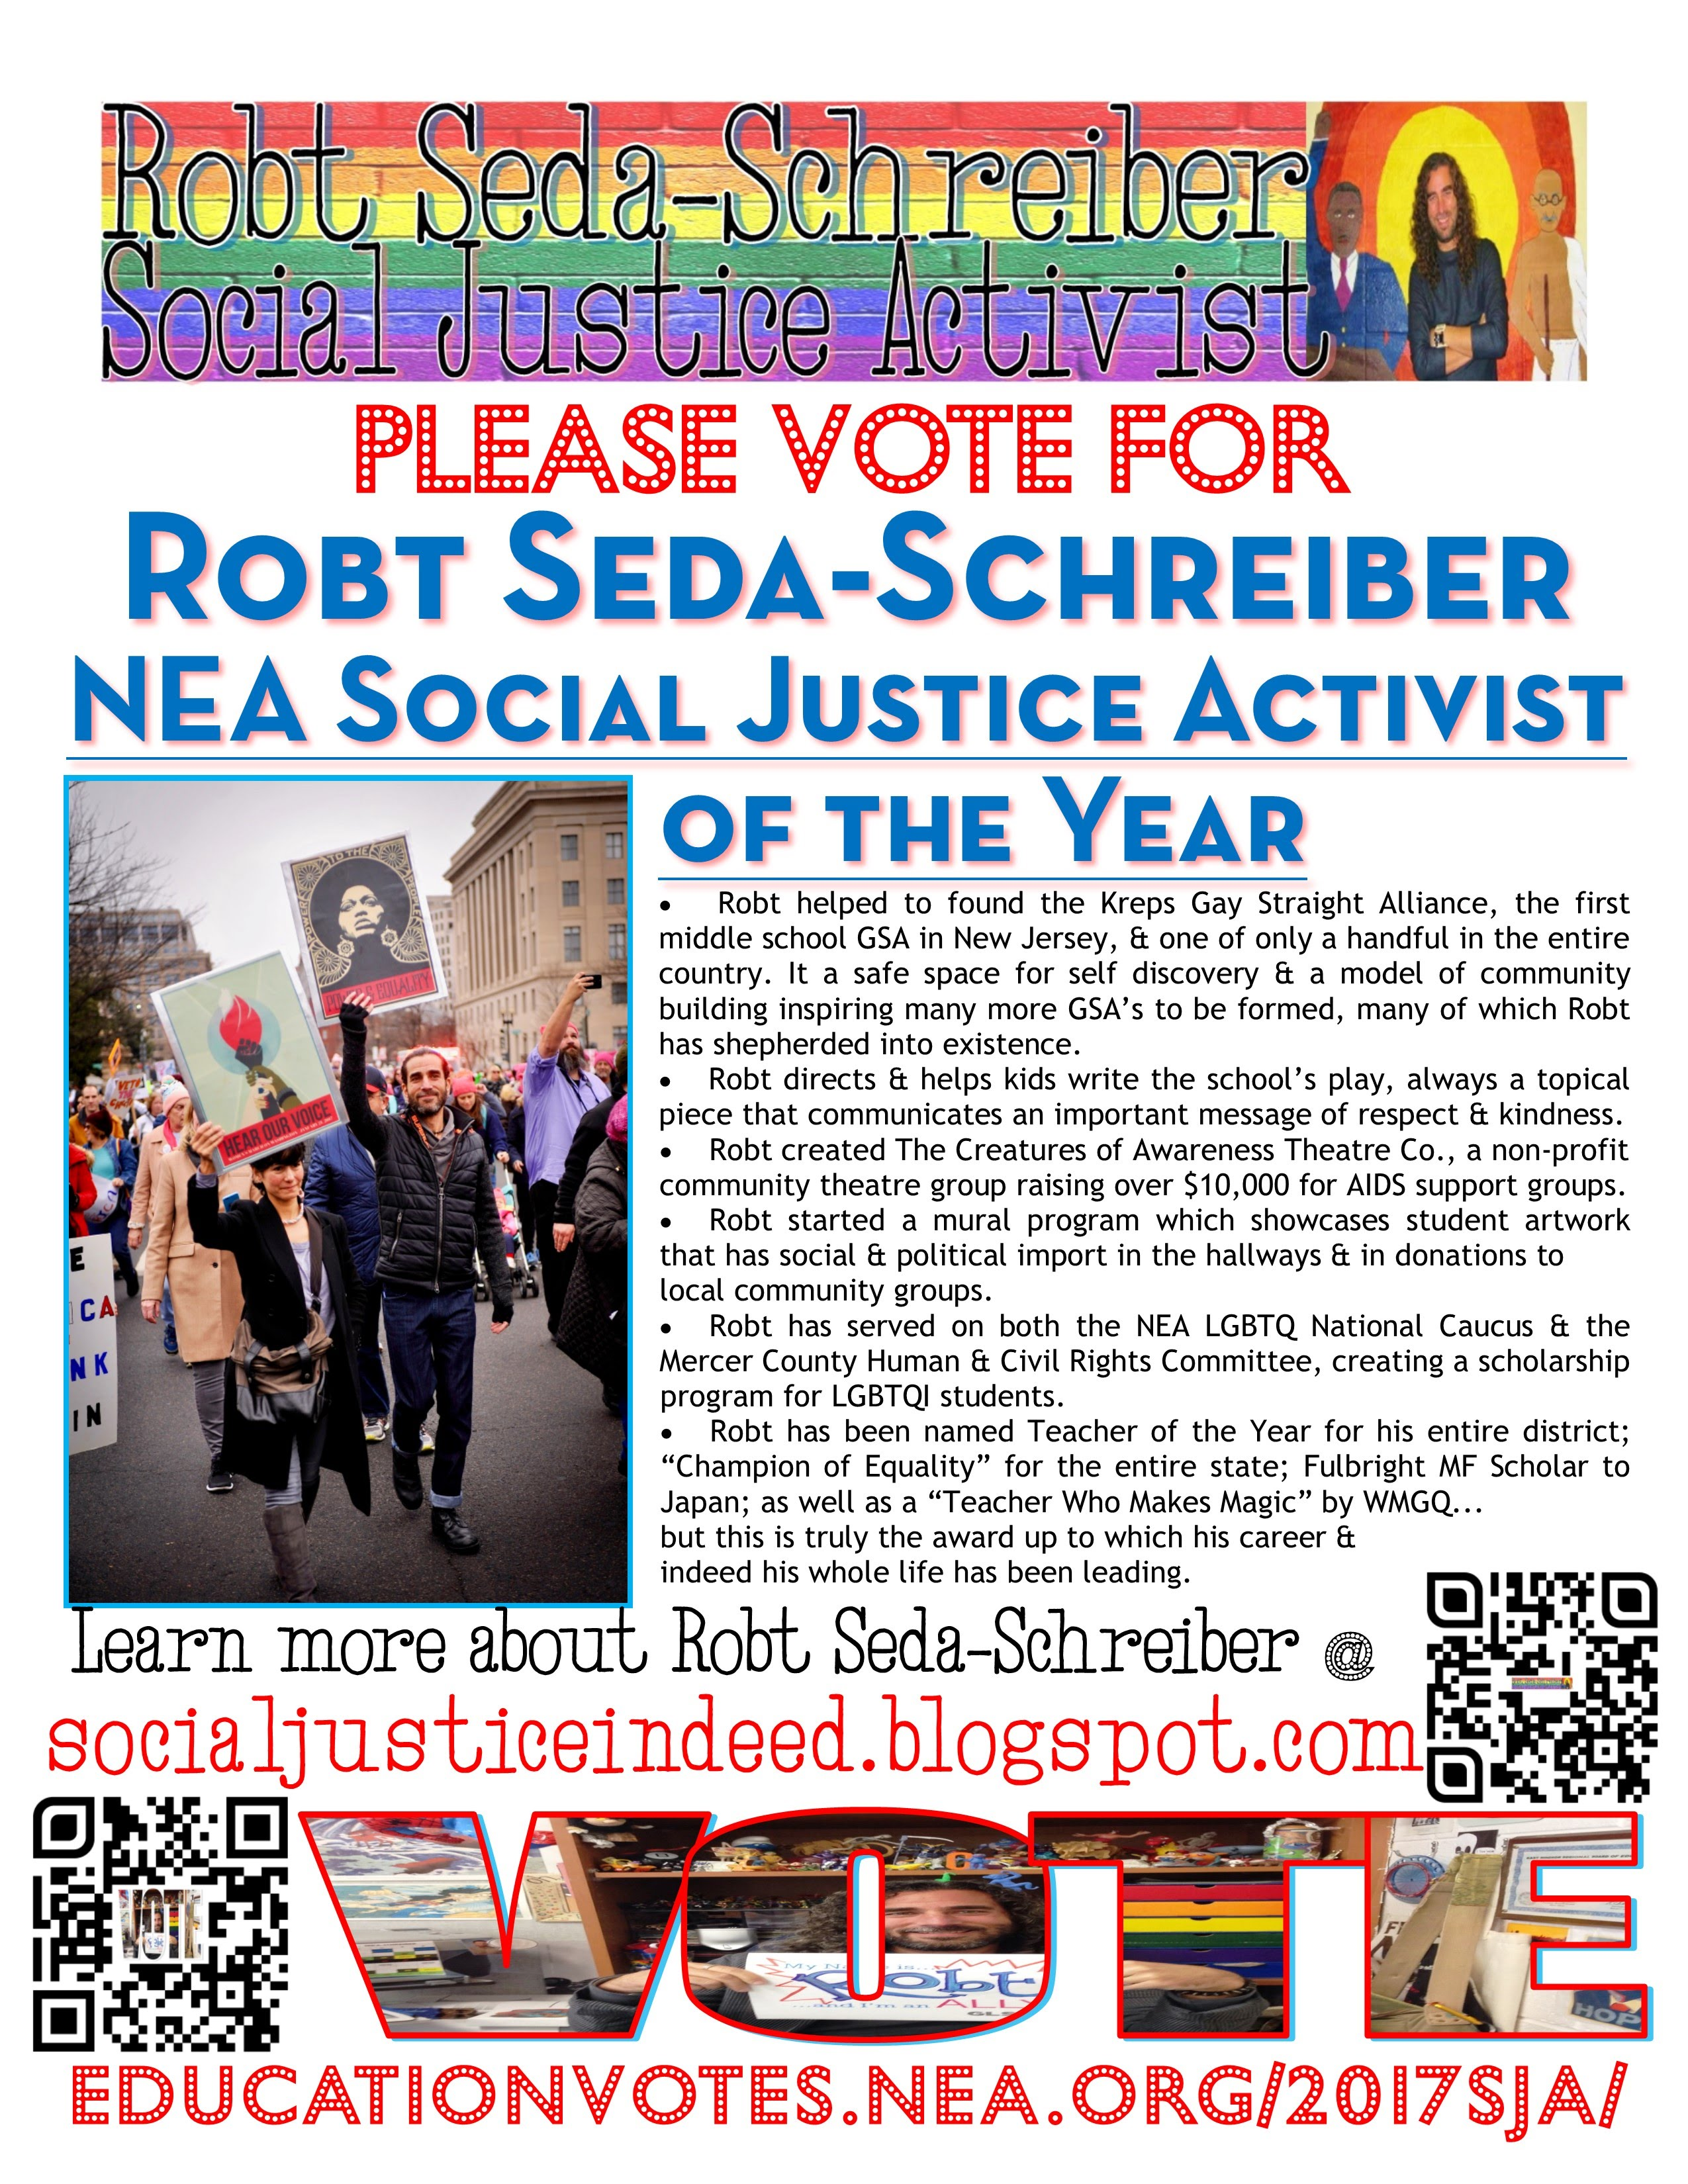 Please vote for Mr. Seda-Schreiber!